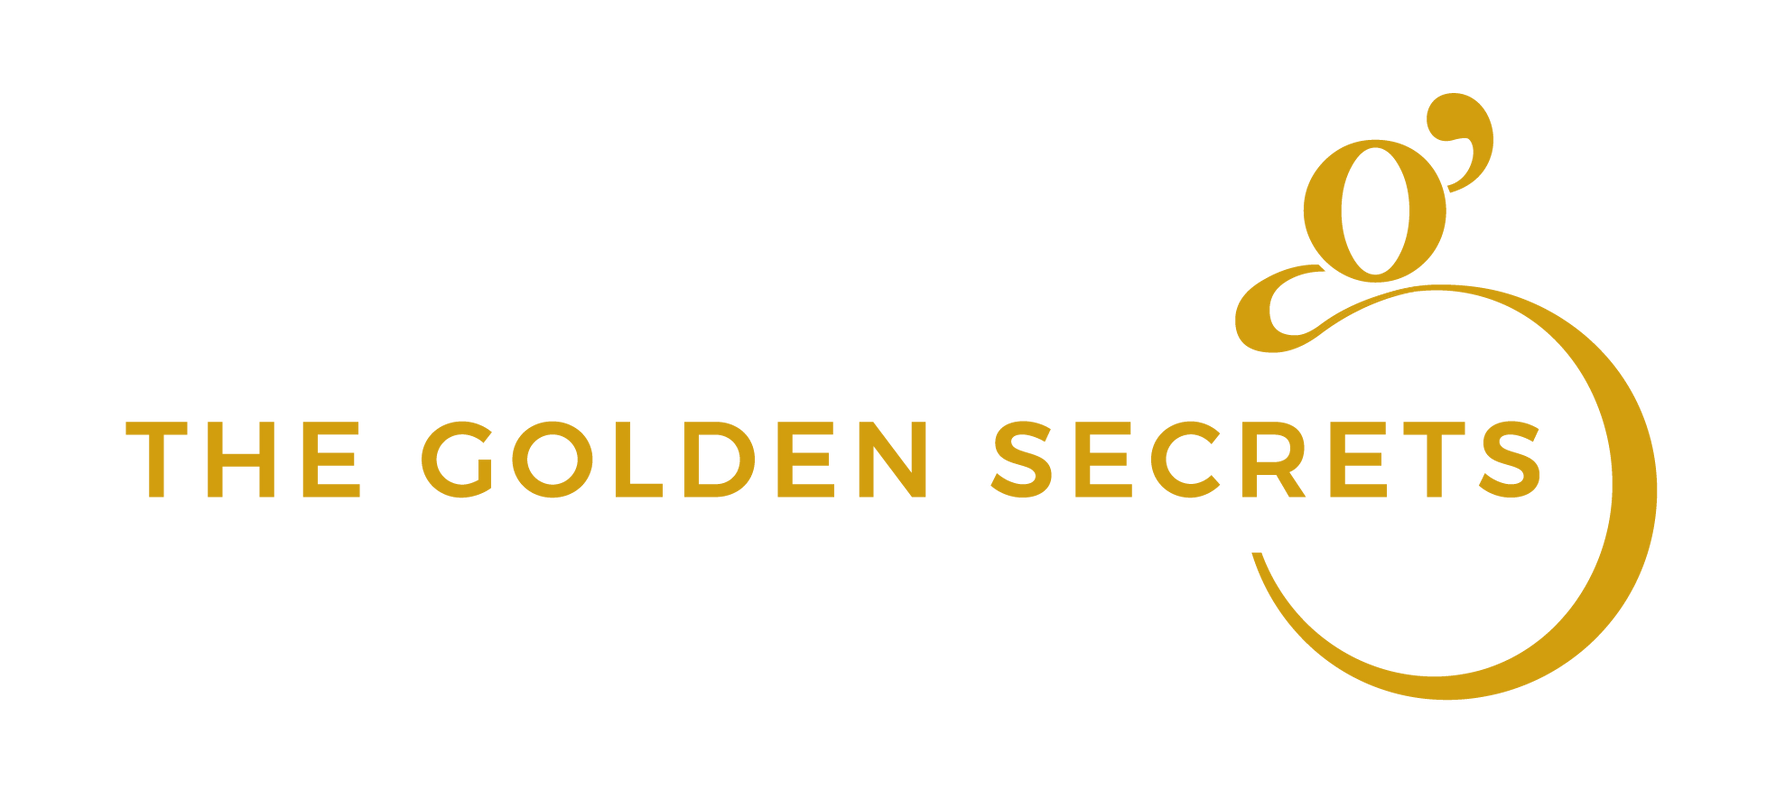 THE GOLDEN SECRETS